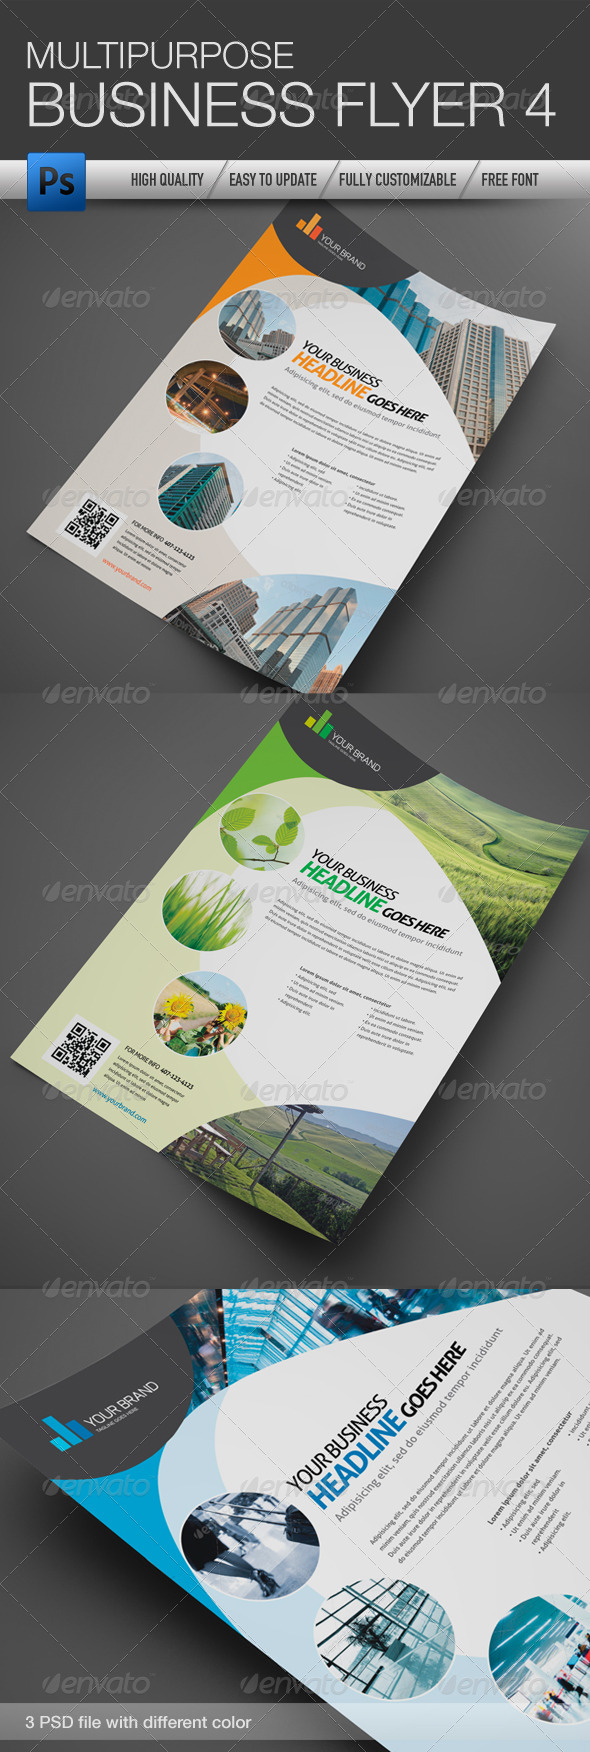 GraphicRiver Multipurpose Business Flyer 4 4711749